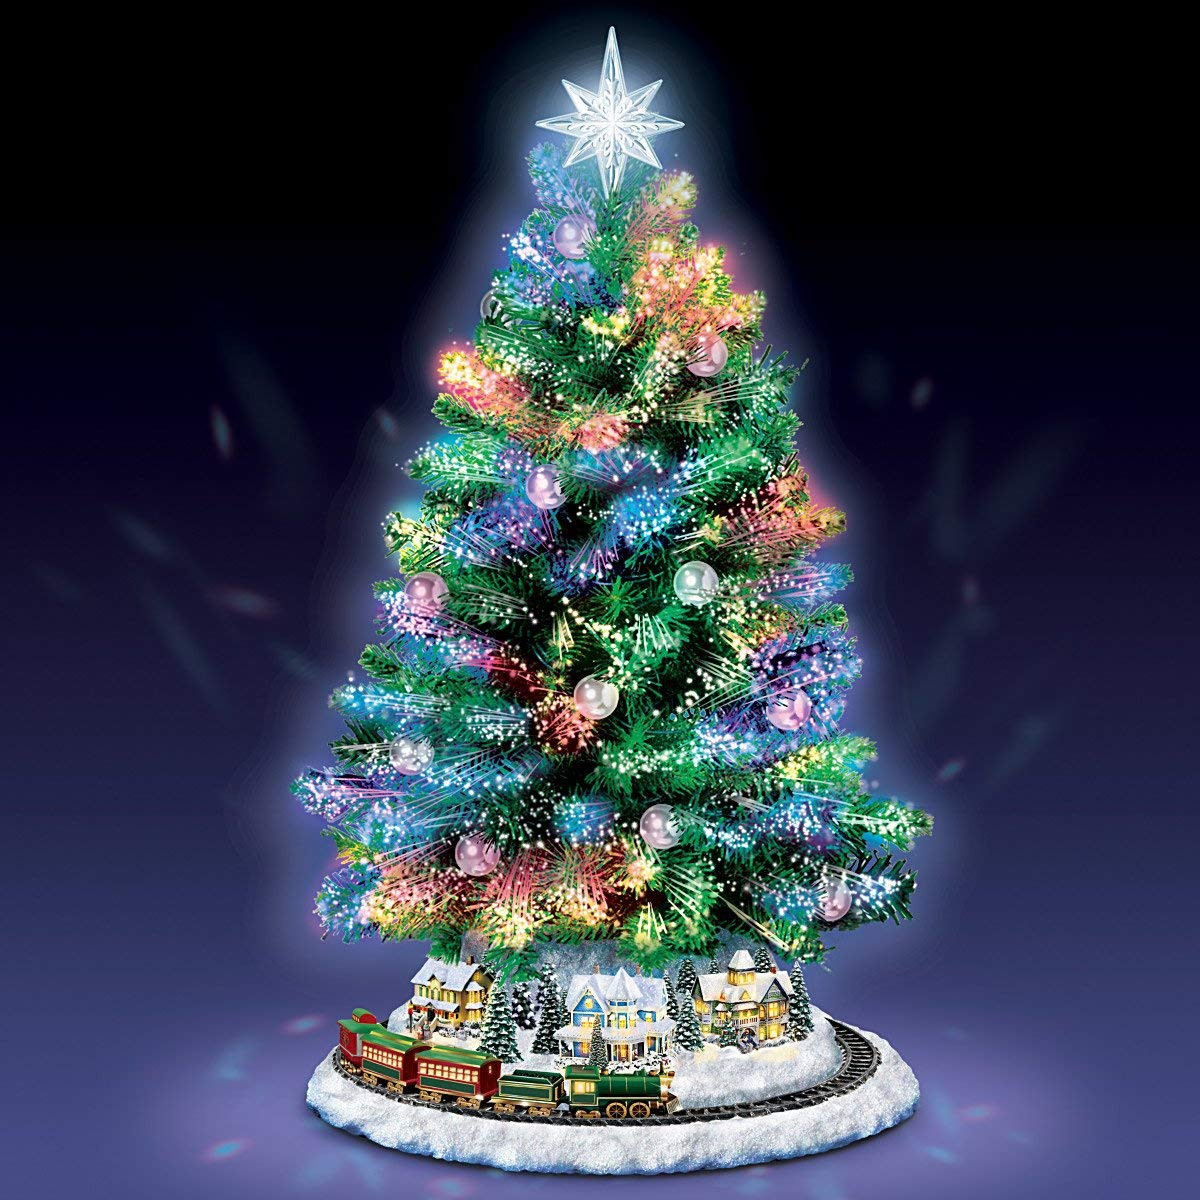 light up branches for vase of amazon com thomas kinkade holiday sparkle color changing fiber inside amazon com thomas kinkade holiday sparkle color changing fiber optic tabletop christmas tree by the bradford exchange home kitchen